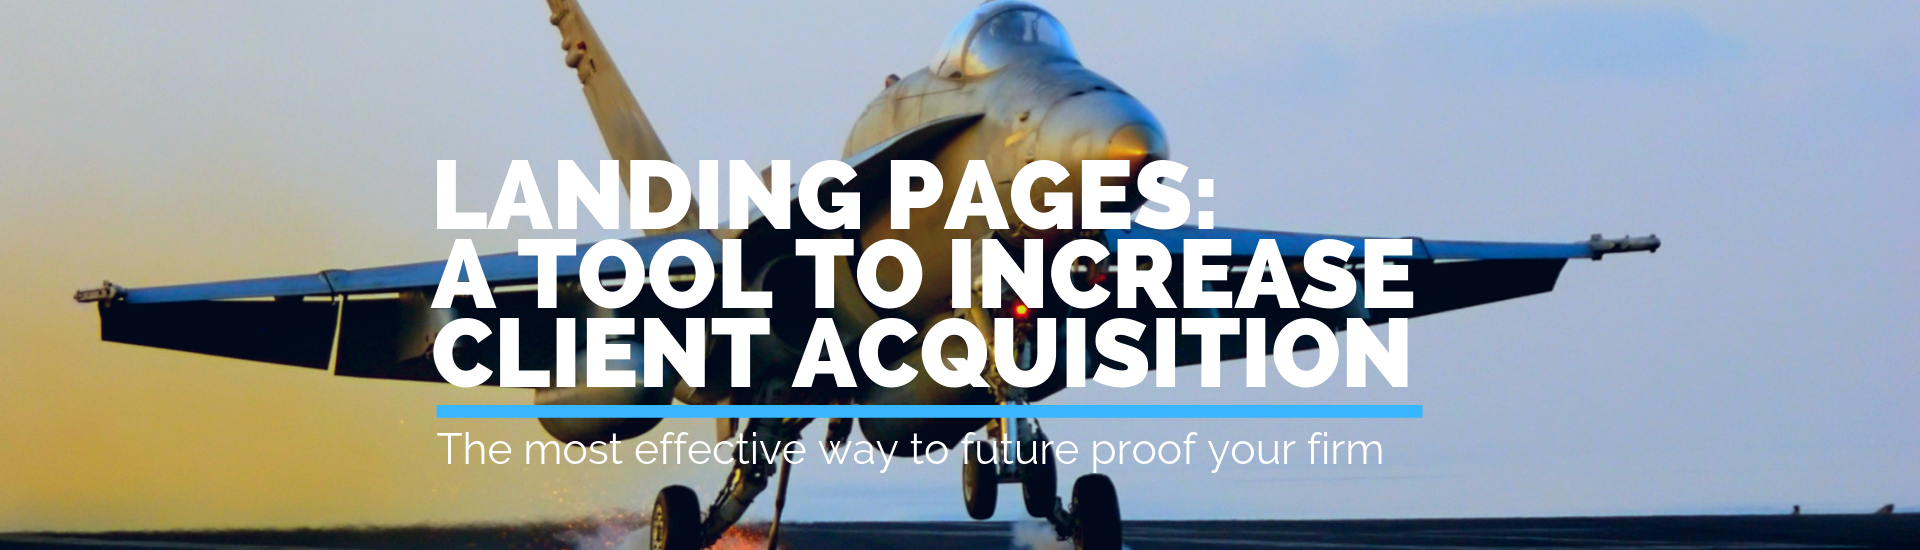 Landing Pages: A Tool To Increase Client Acquisition | Andrew Abel | Advisio